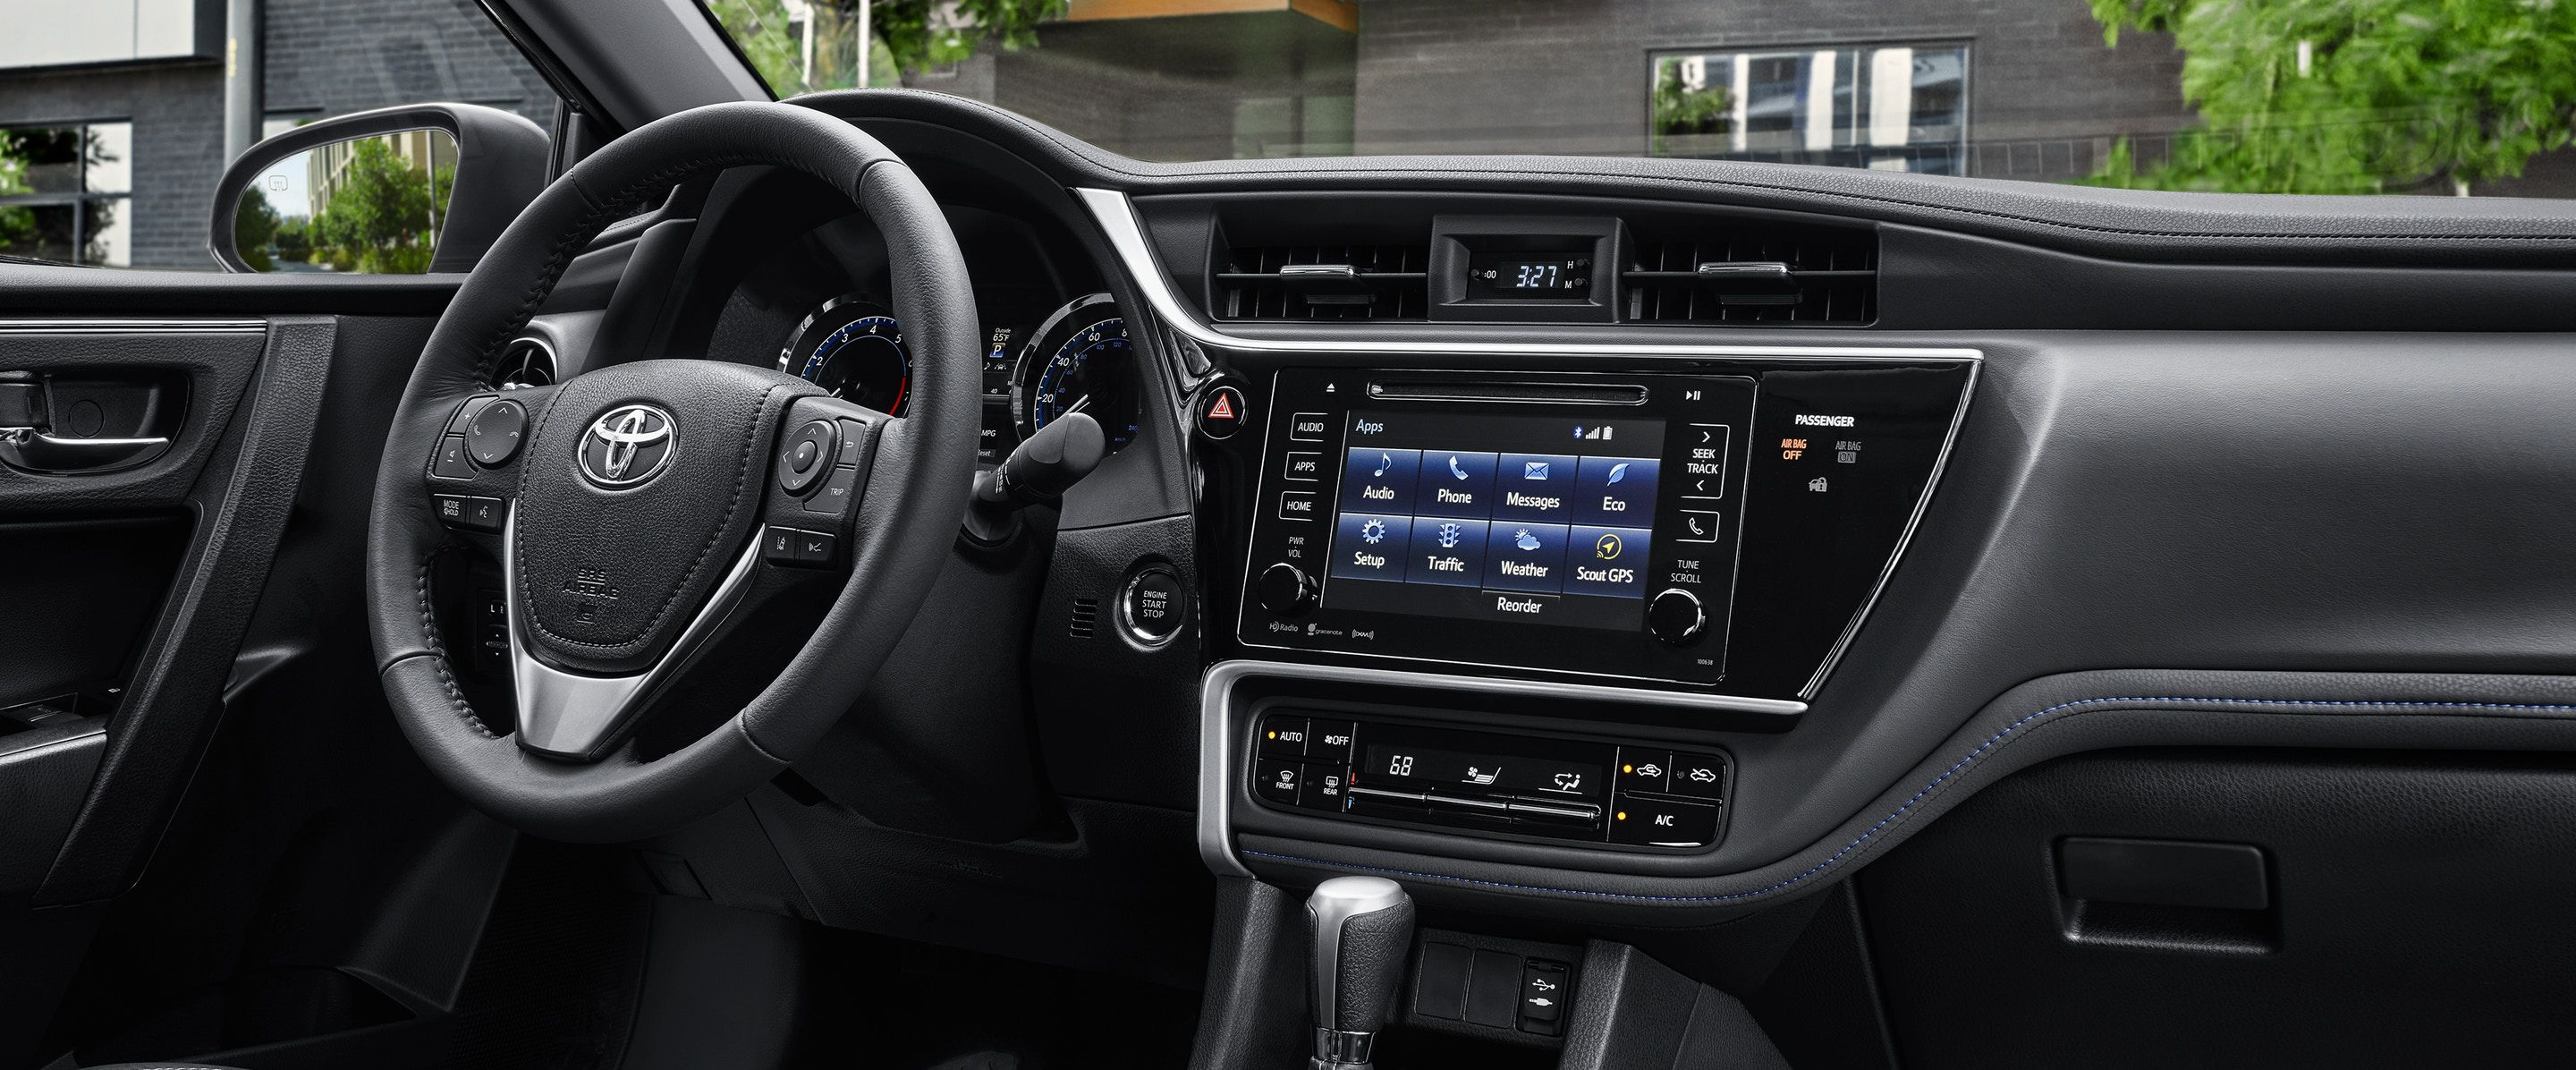 The Corolla's Well-Appointed Dashboard